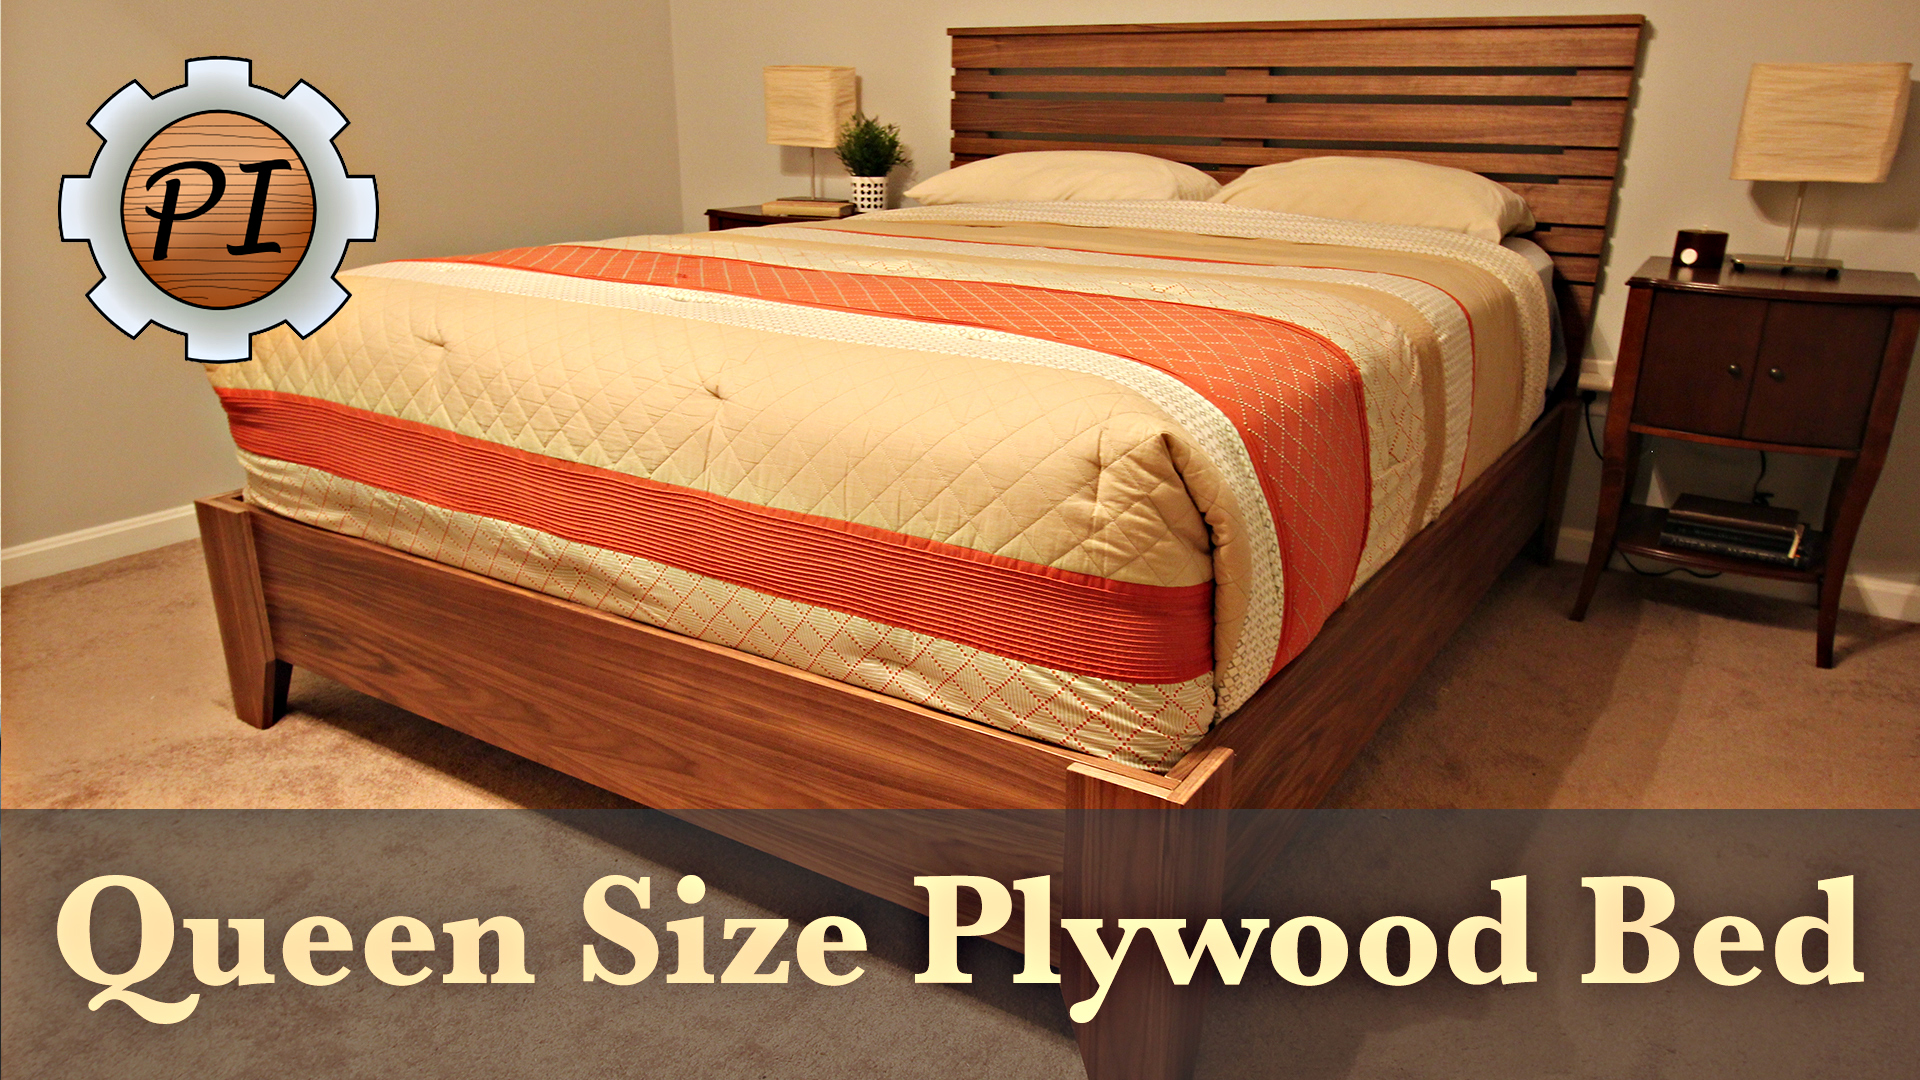 How To Make A Queen Sized Plywood Bed